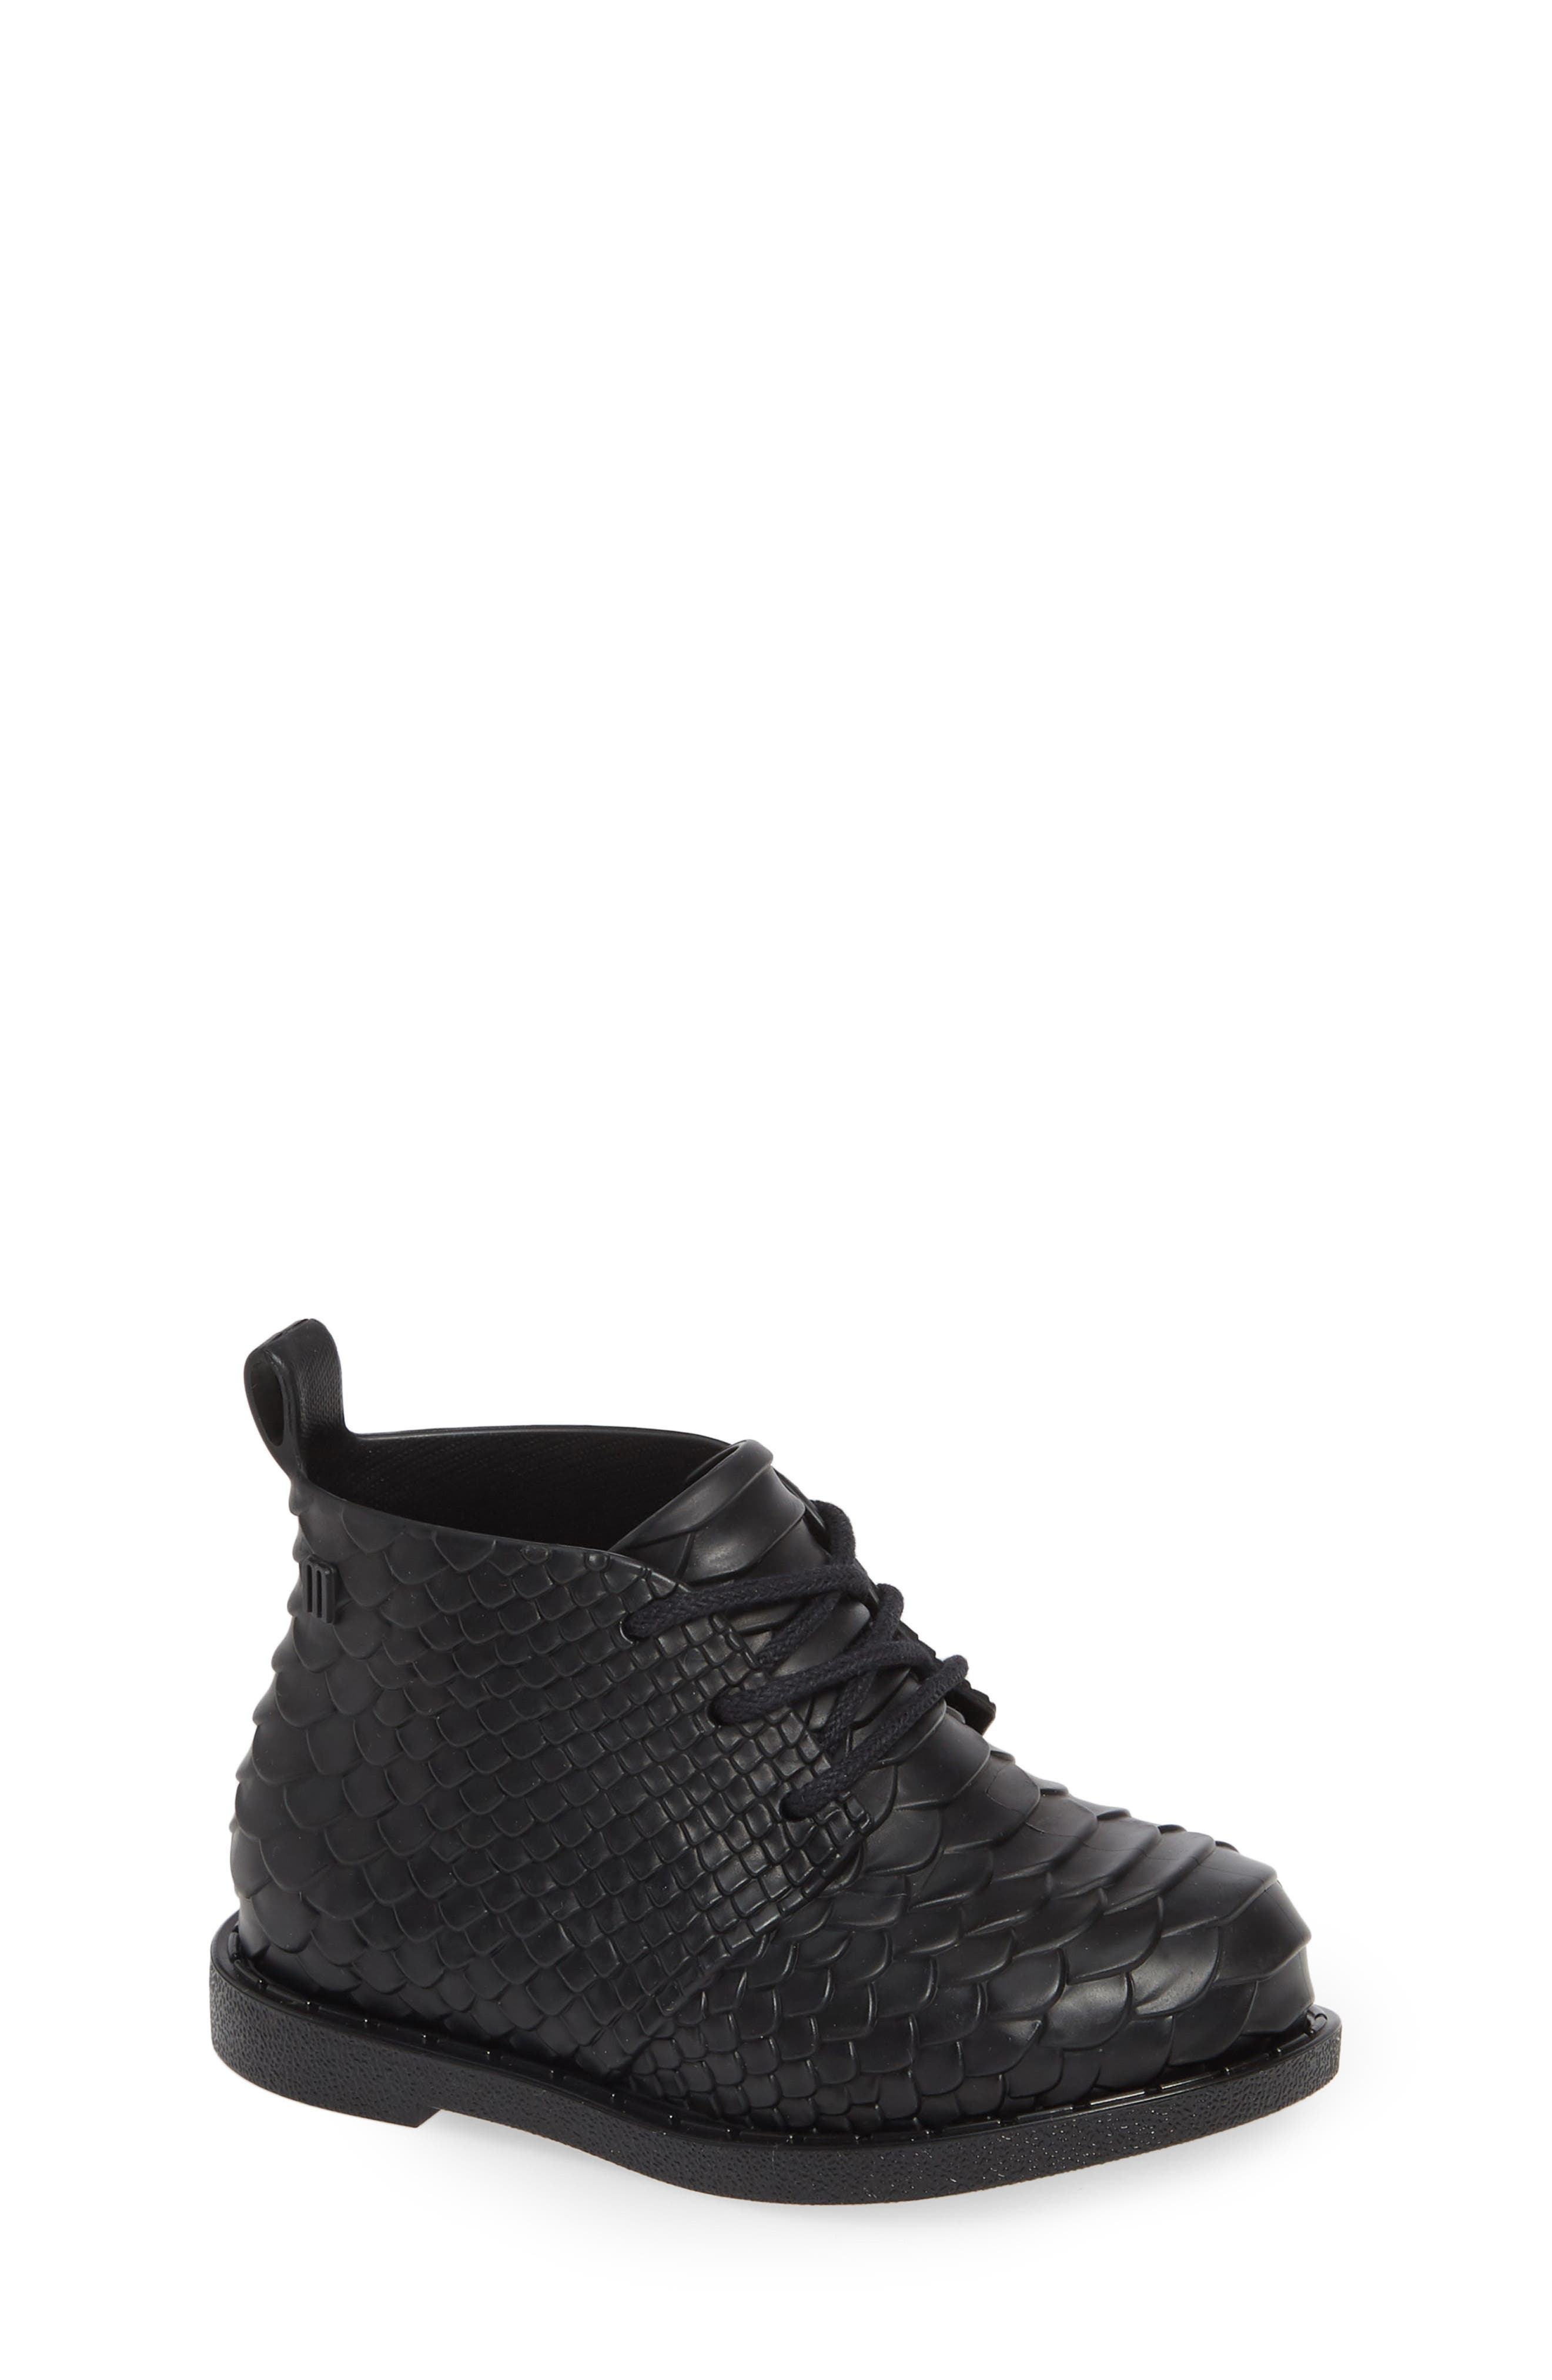 Python Textured Water Resistant Bootie,                             Main thumbnail 1, color,                             BLACK